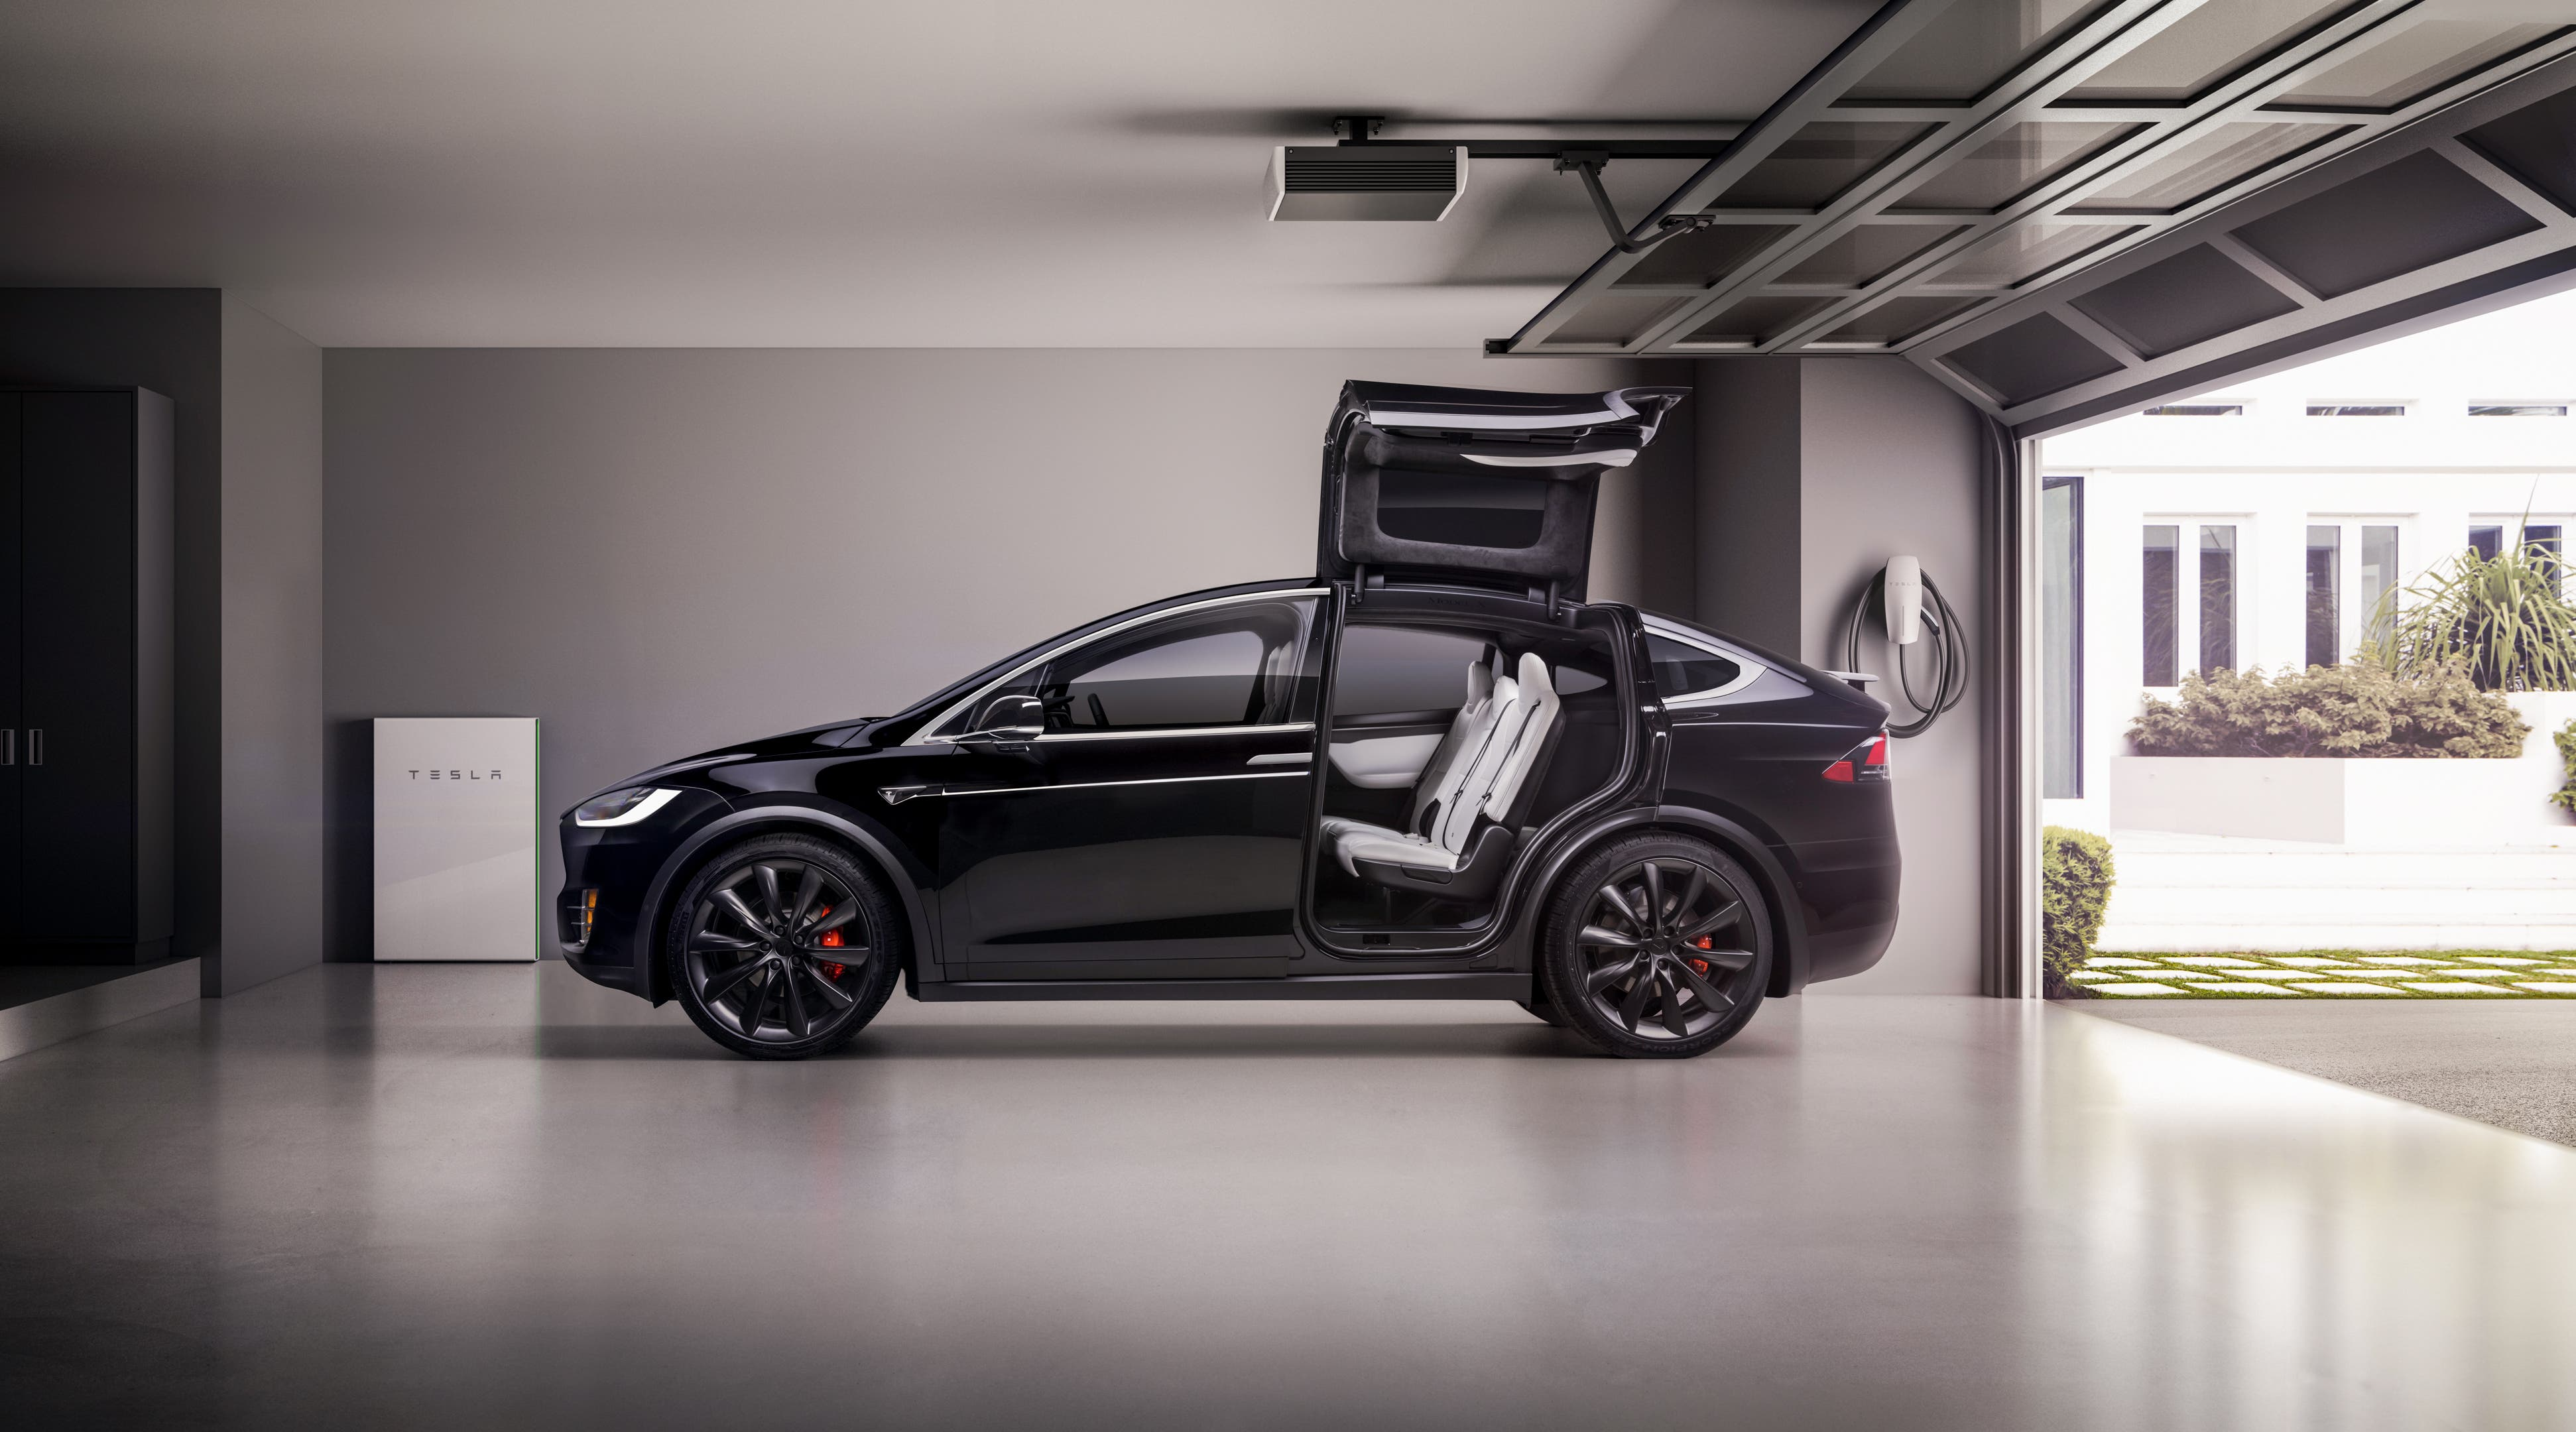 This White Glove Charger Installation Service Helps New Tesla Owners To Get Their Charging Station Planned Out Permitted And Installed At Home